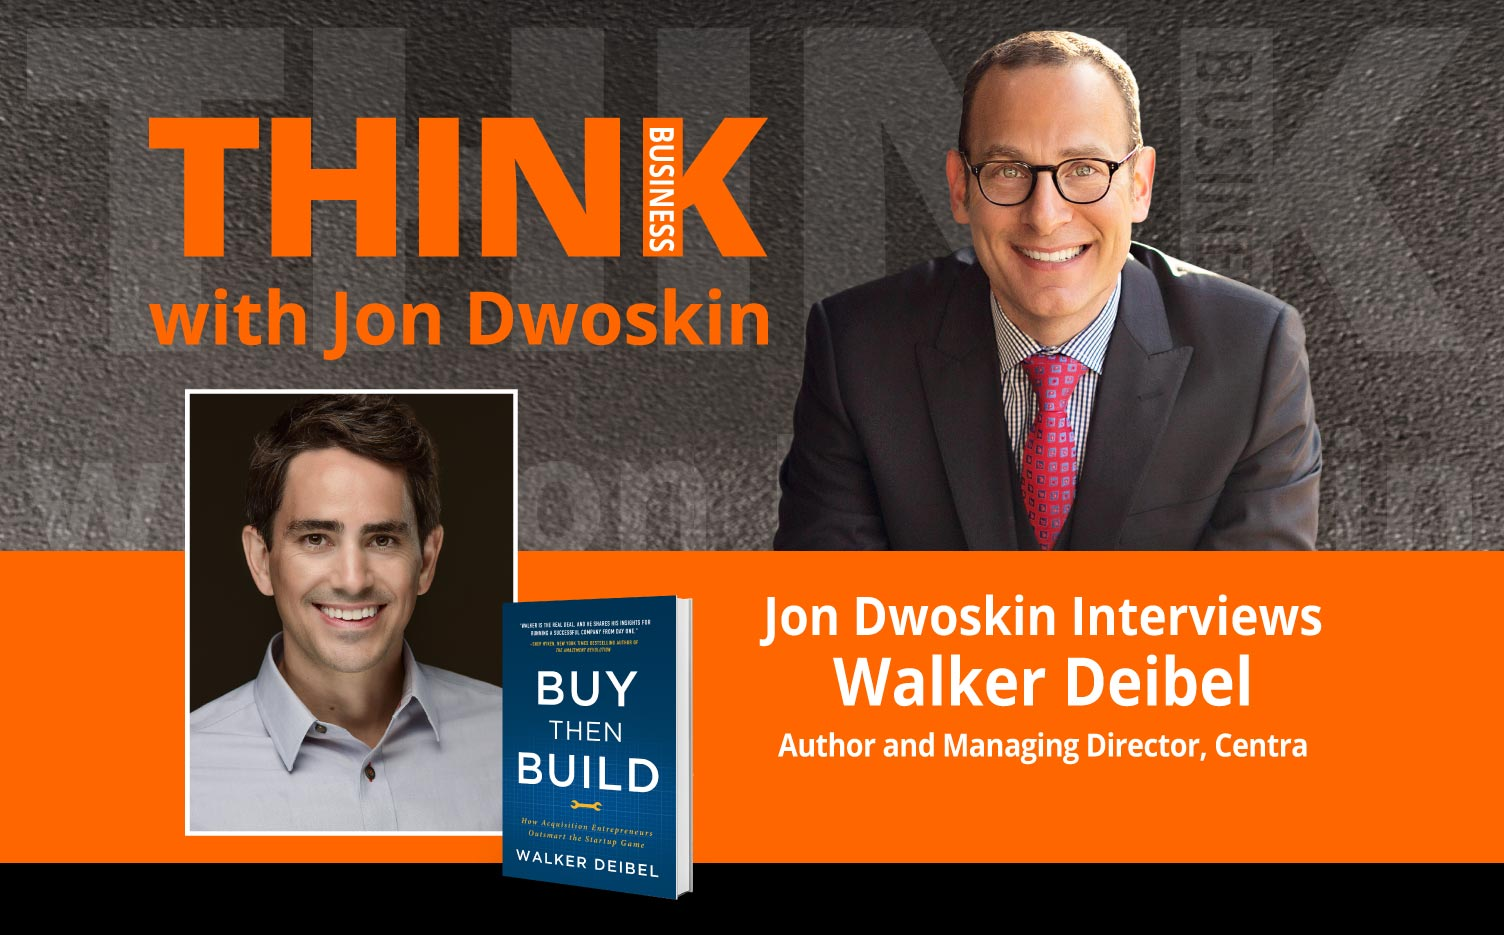 THINK Business Podcast: Jon Dwoskin Interviews Walker Deibel, Author and Managing Director, Centra